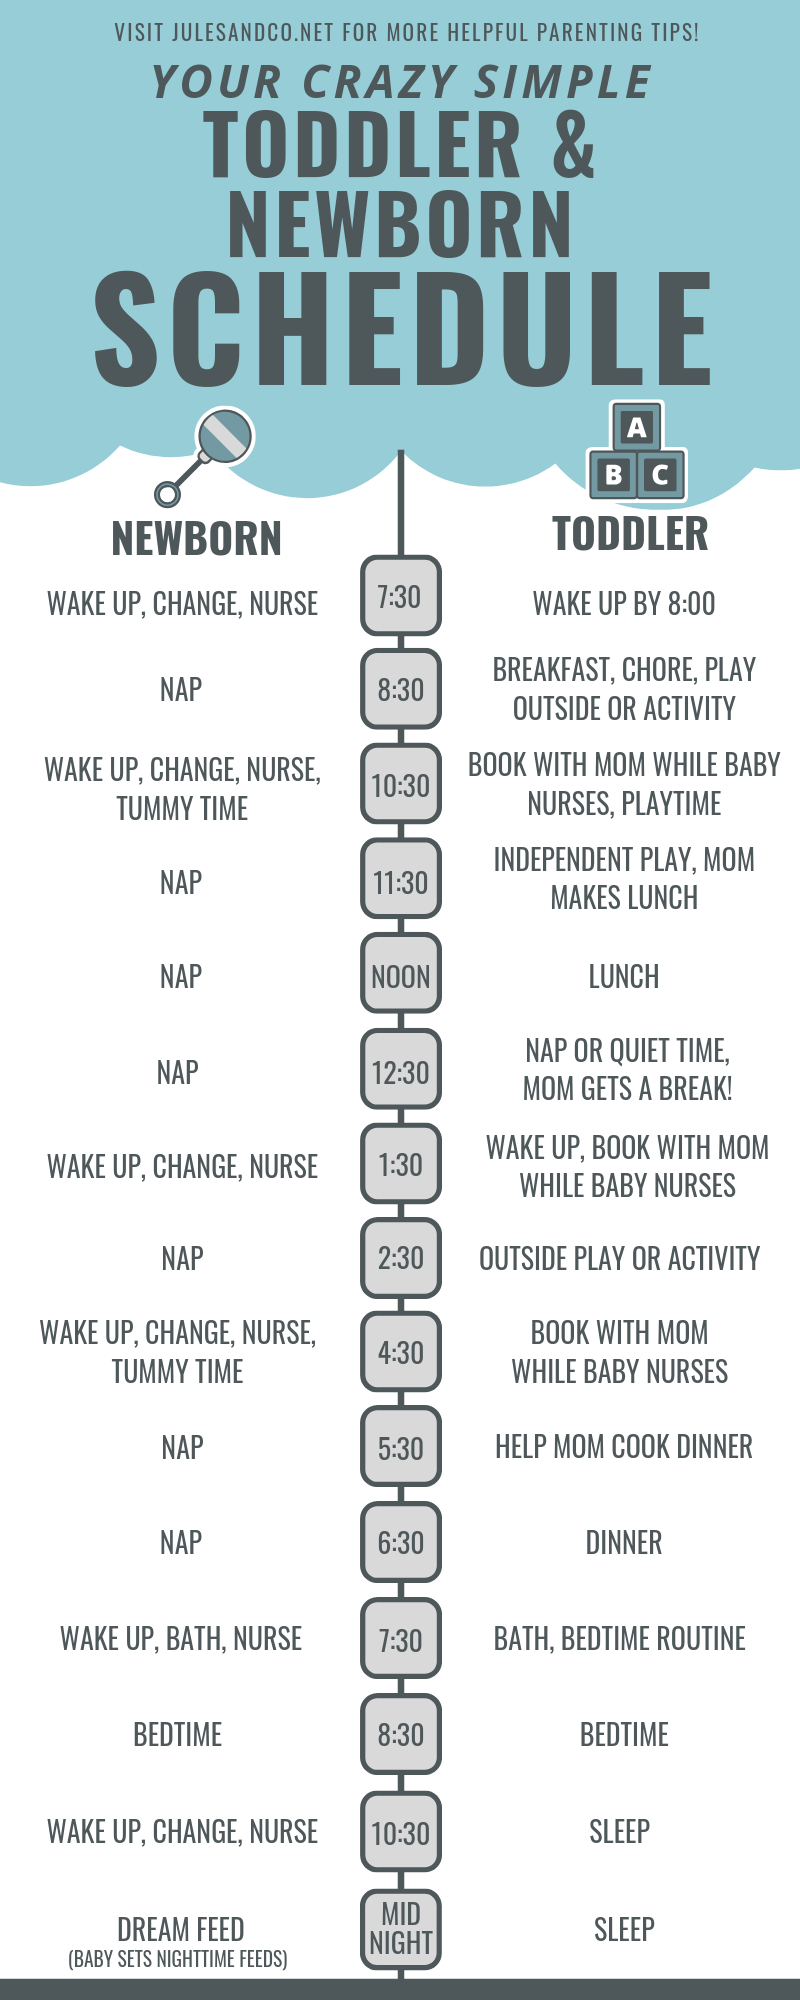 A Foolproof Newborn Schedule (That Works for Your Toddler, Too!)